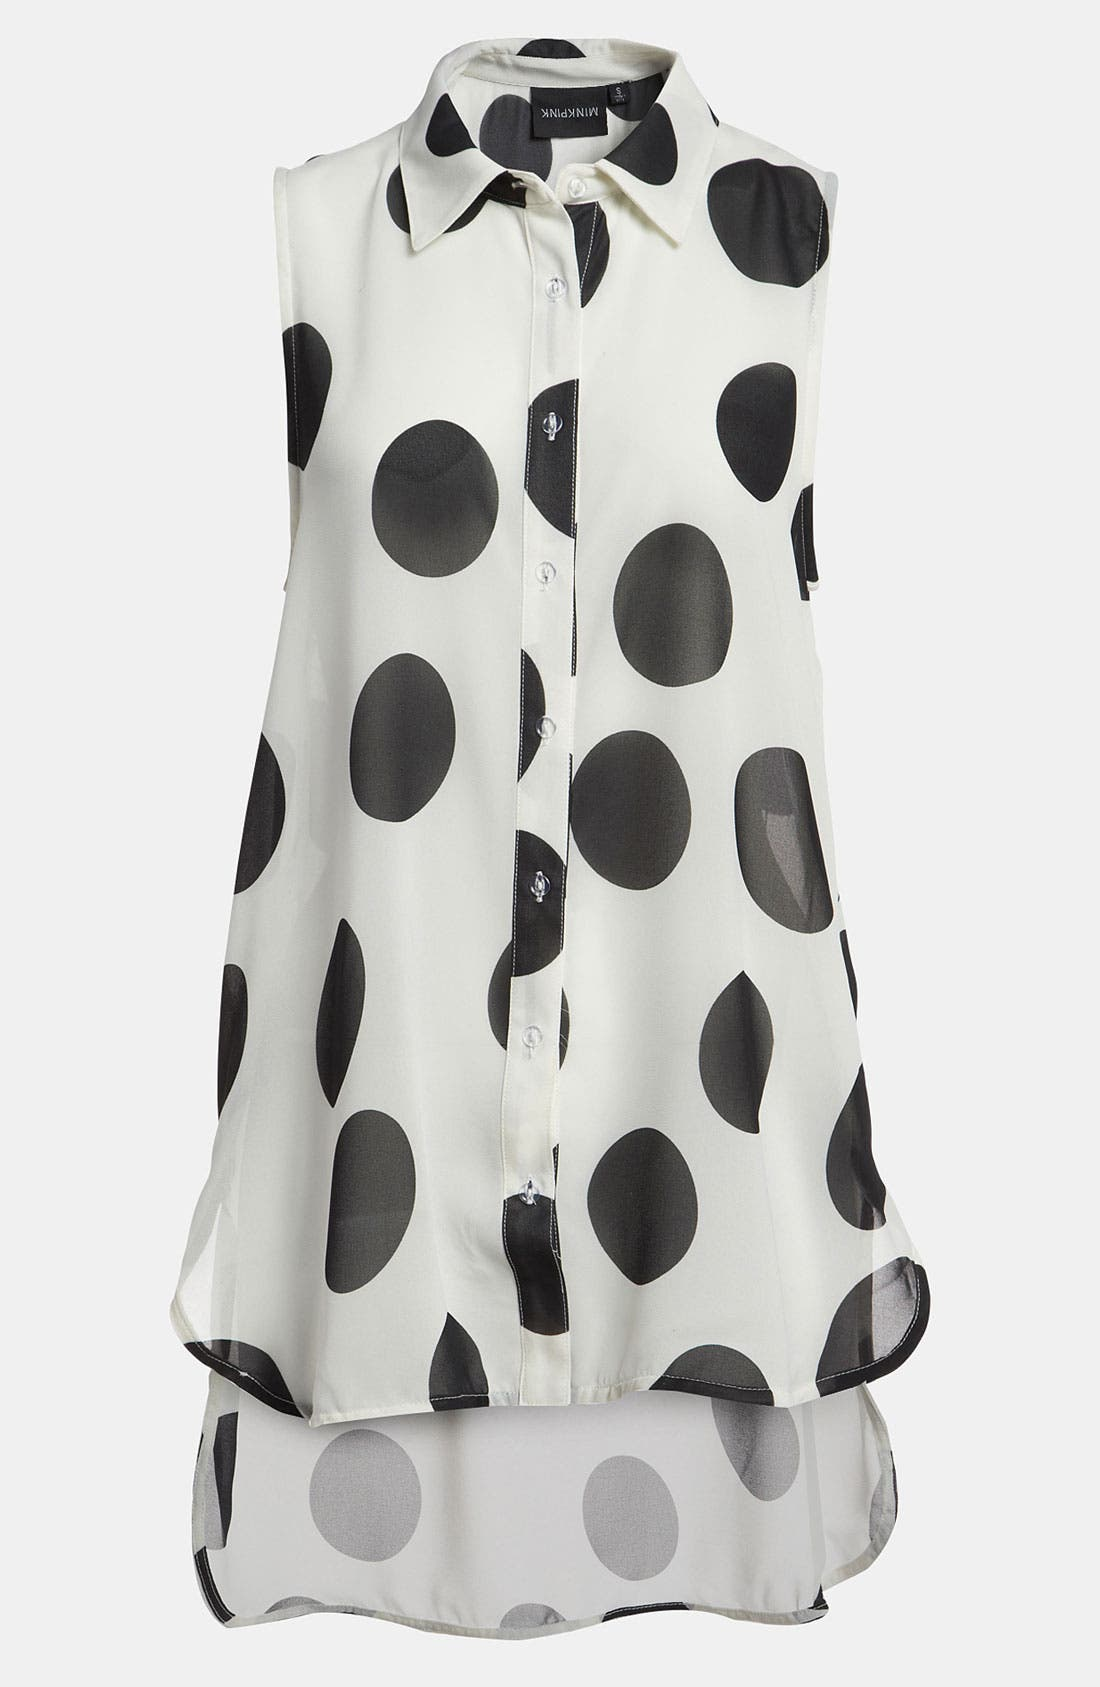 Alternate Image 1 Selected - MINKPINK 'Clowning Around' Sheer Sleeveless Shirt